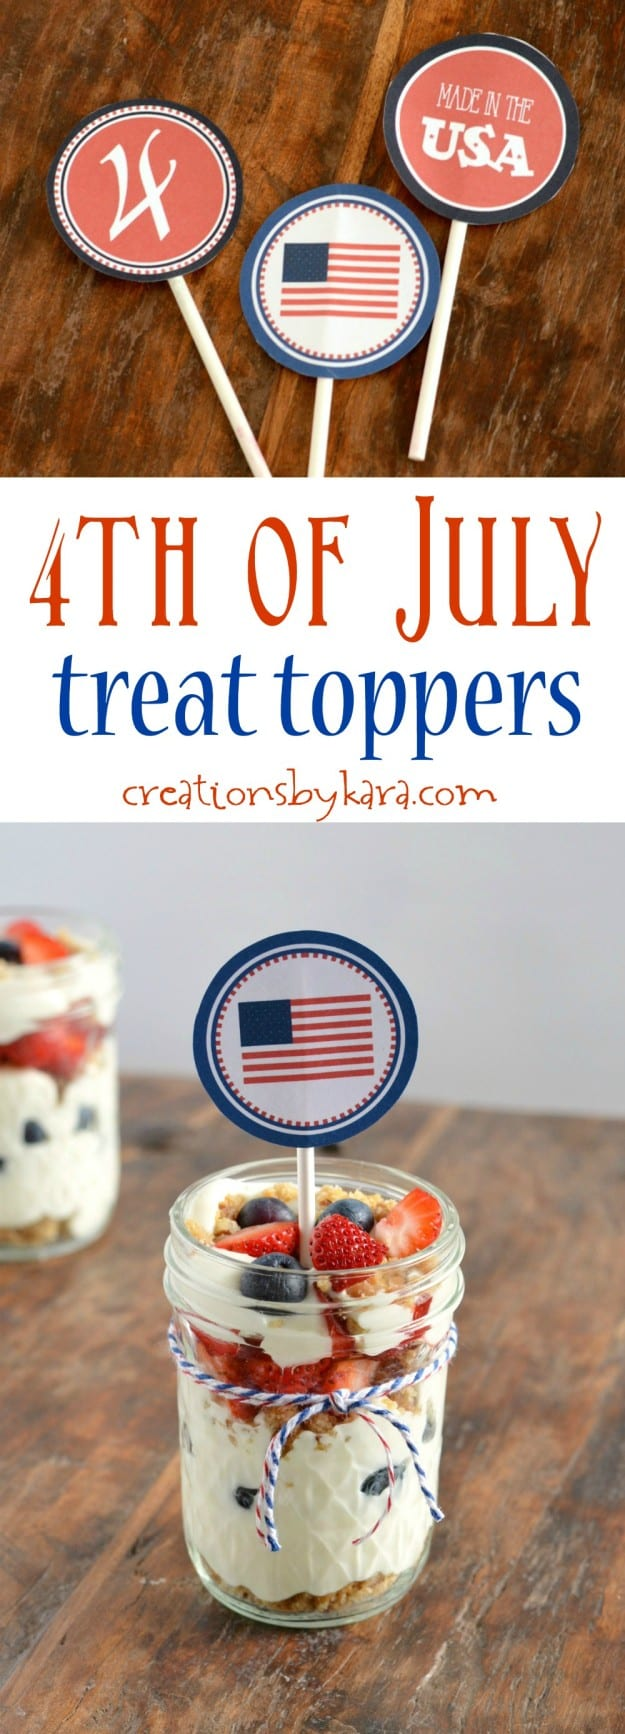 Free printable 4th of July Treat Toppers - add them to cupcakes, mini trifles, or any 4th of July food!